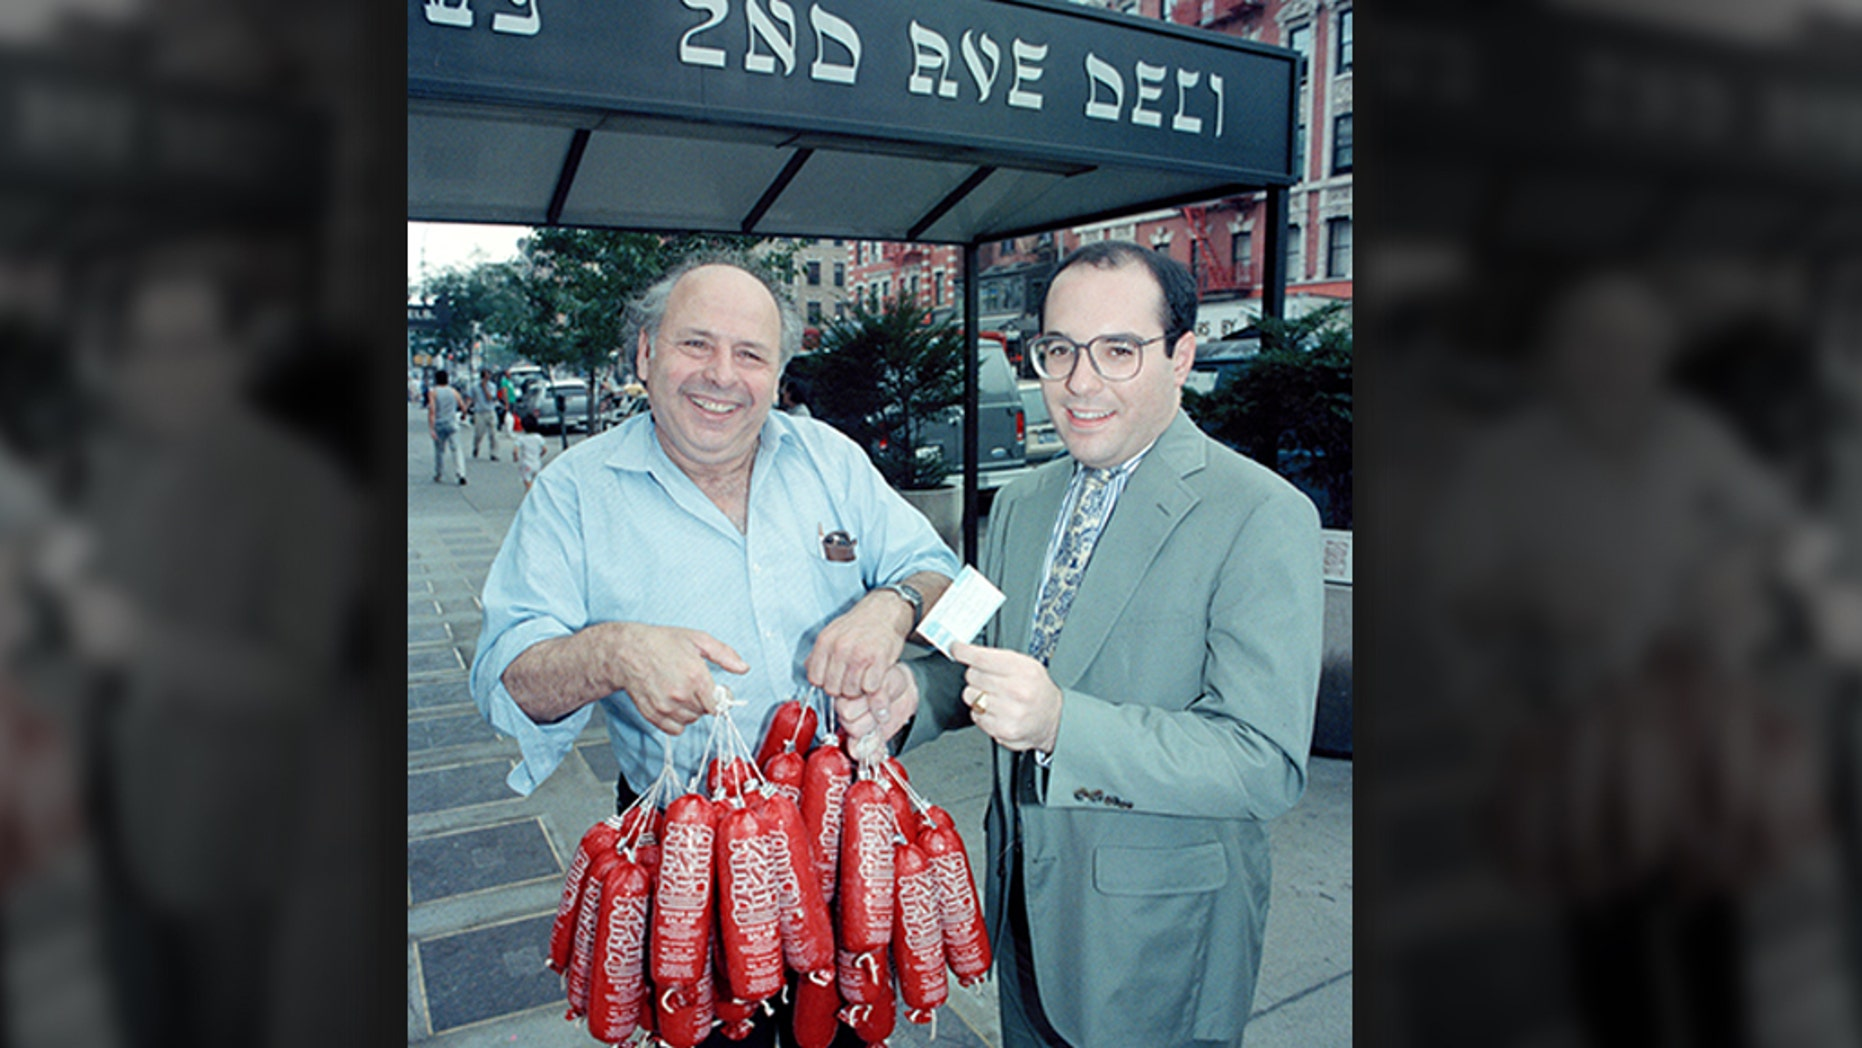 Two retired New York Police Department officers and a cold case detective have teamed up in an attempt to solve the decades-old murder of Abe Lebewold, founder of the 2nd Ave Deli